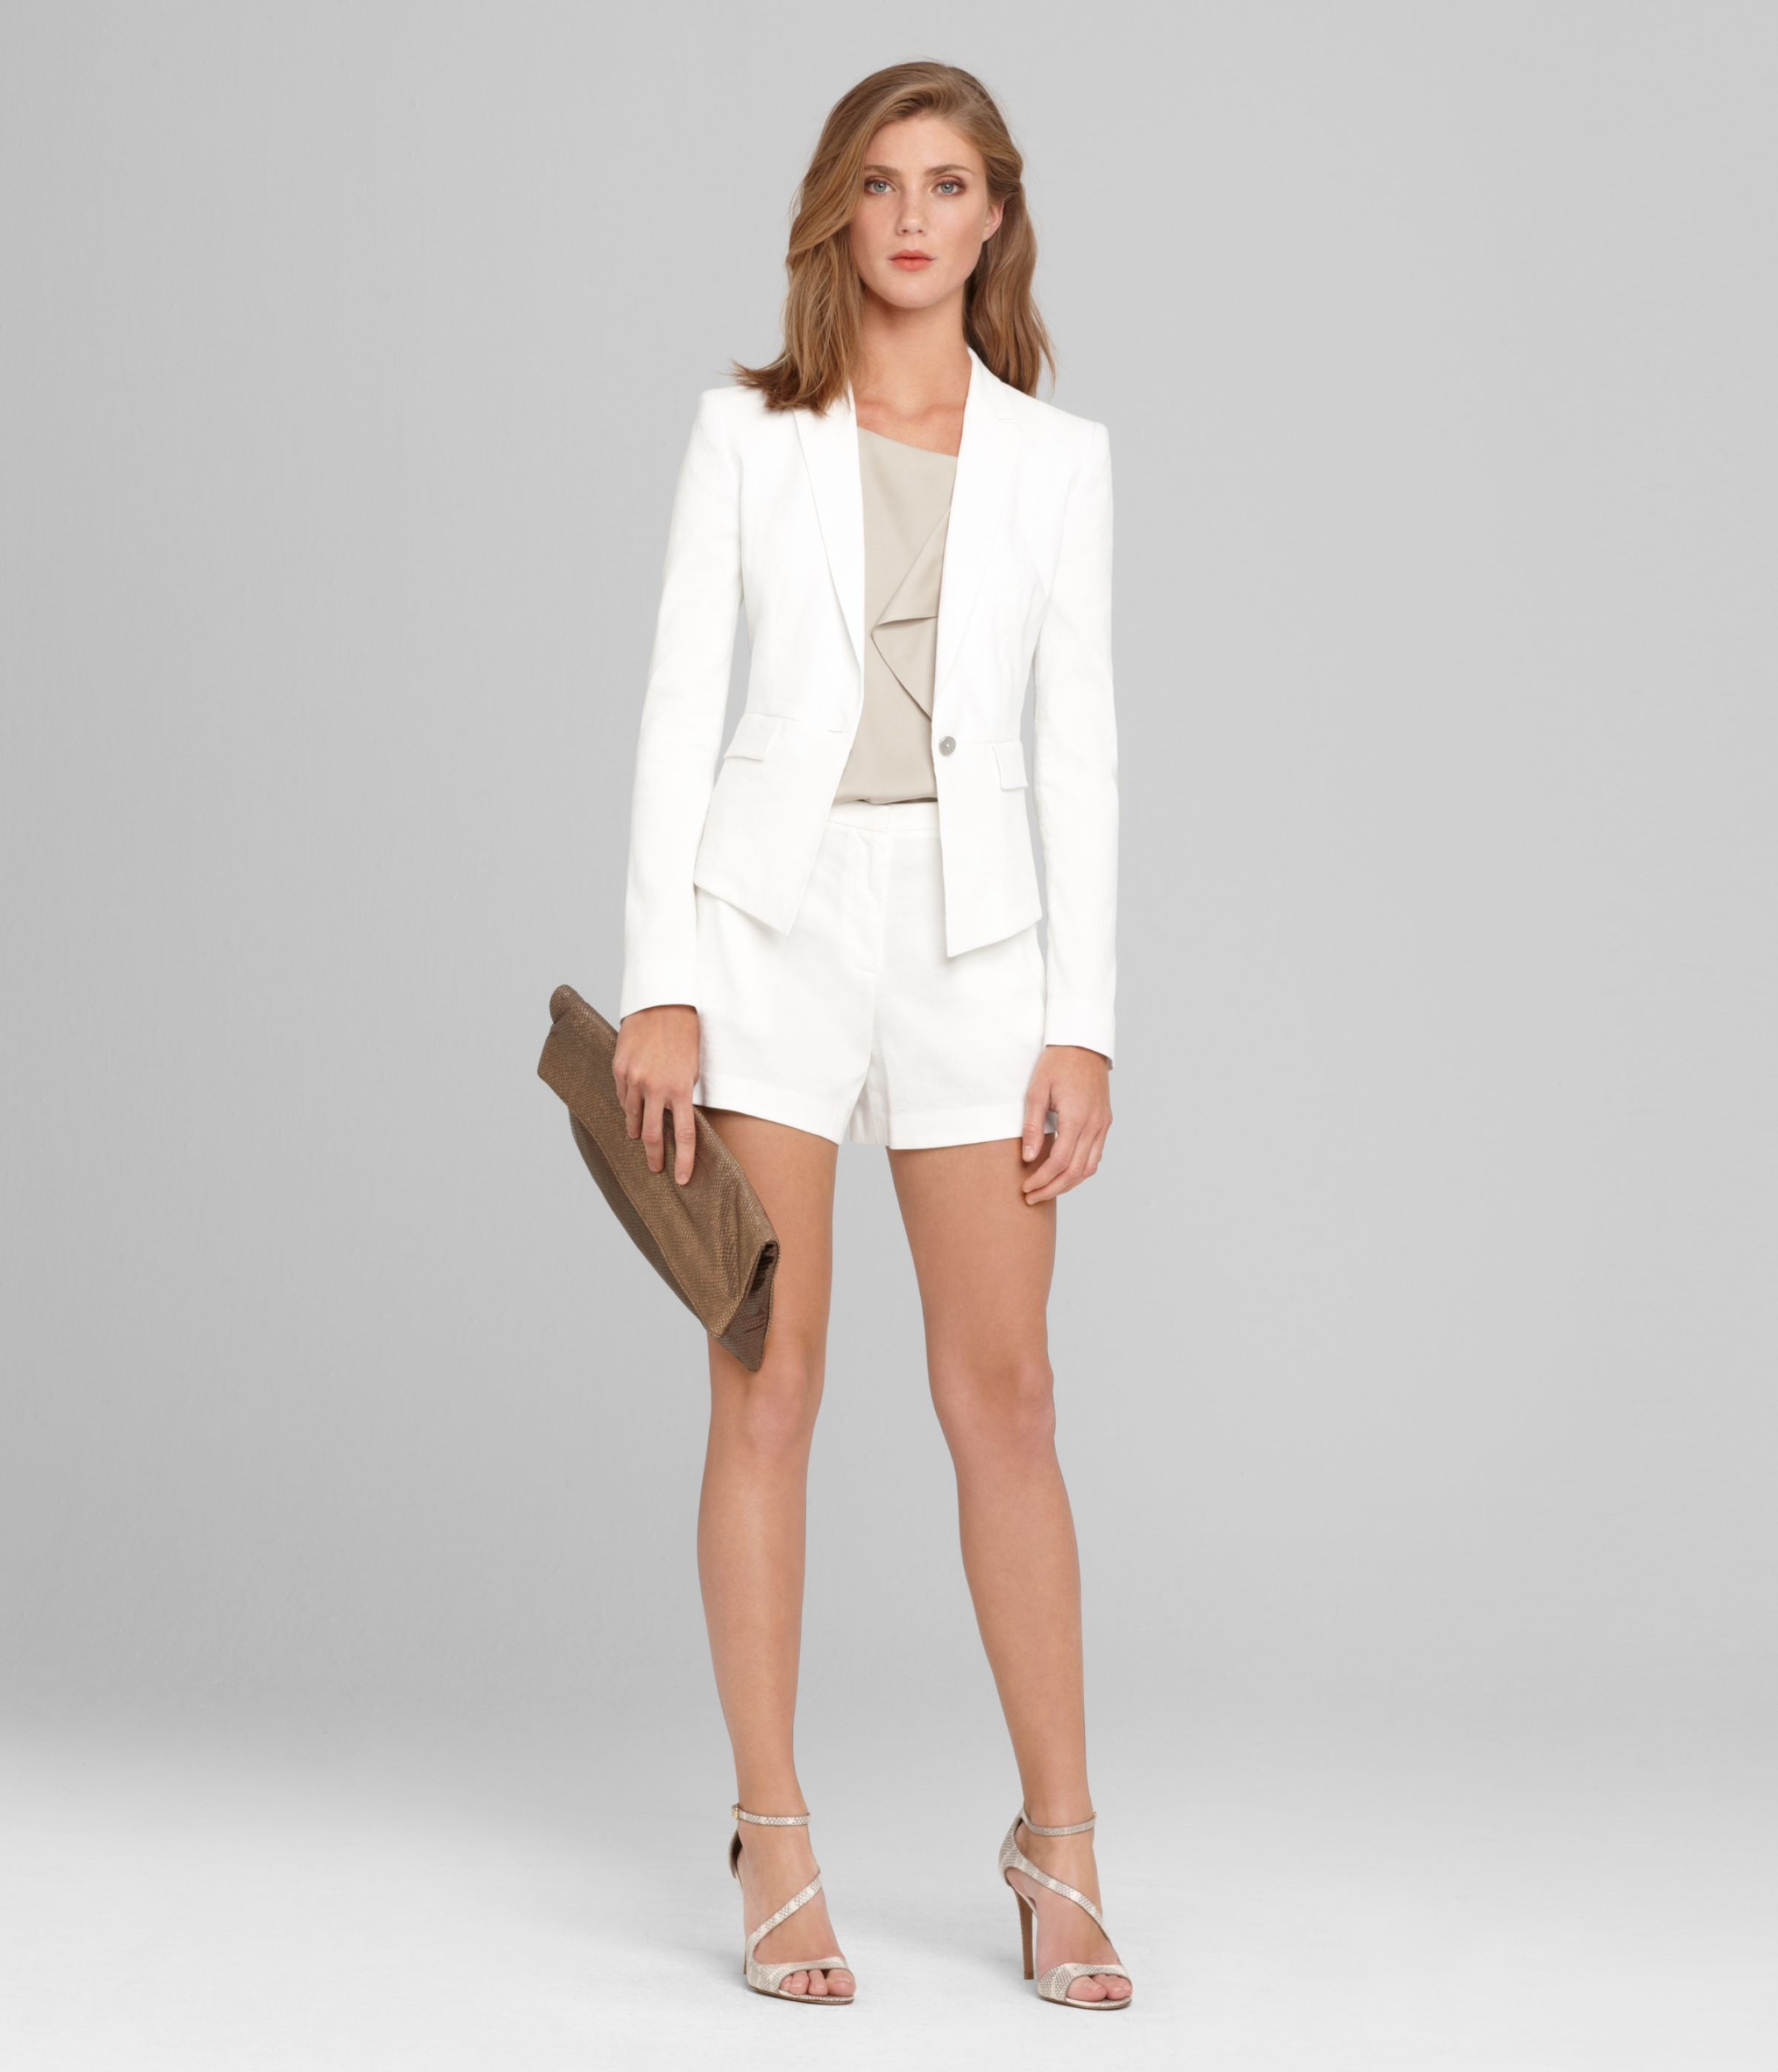 Shorts Suit Fashion Pinterest Short Suit Suits And White Suits